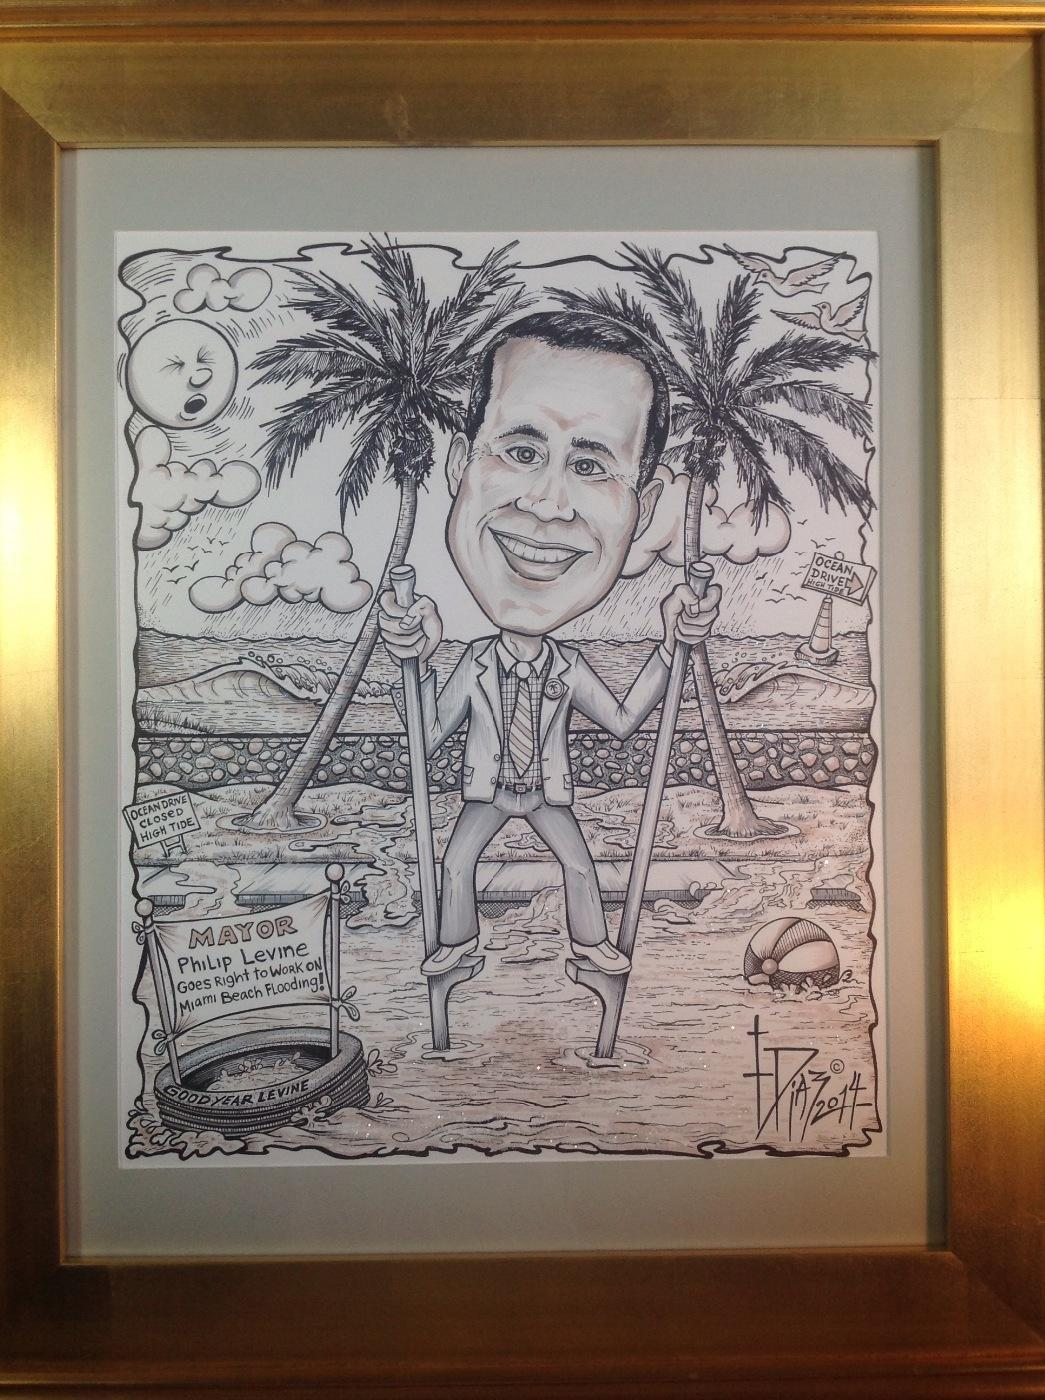 #Cartoon of #MayorLevine fixing the flooding in The City of #MiamiBeach Fl.Thank you#MayorLevine for your hard work! http://t.co/nt4eviQBQp